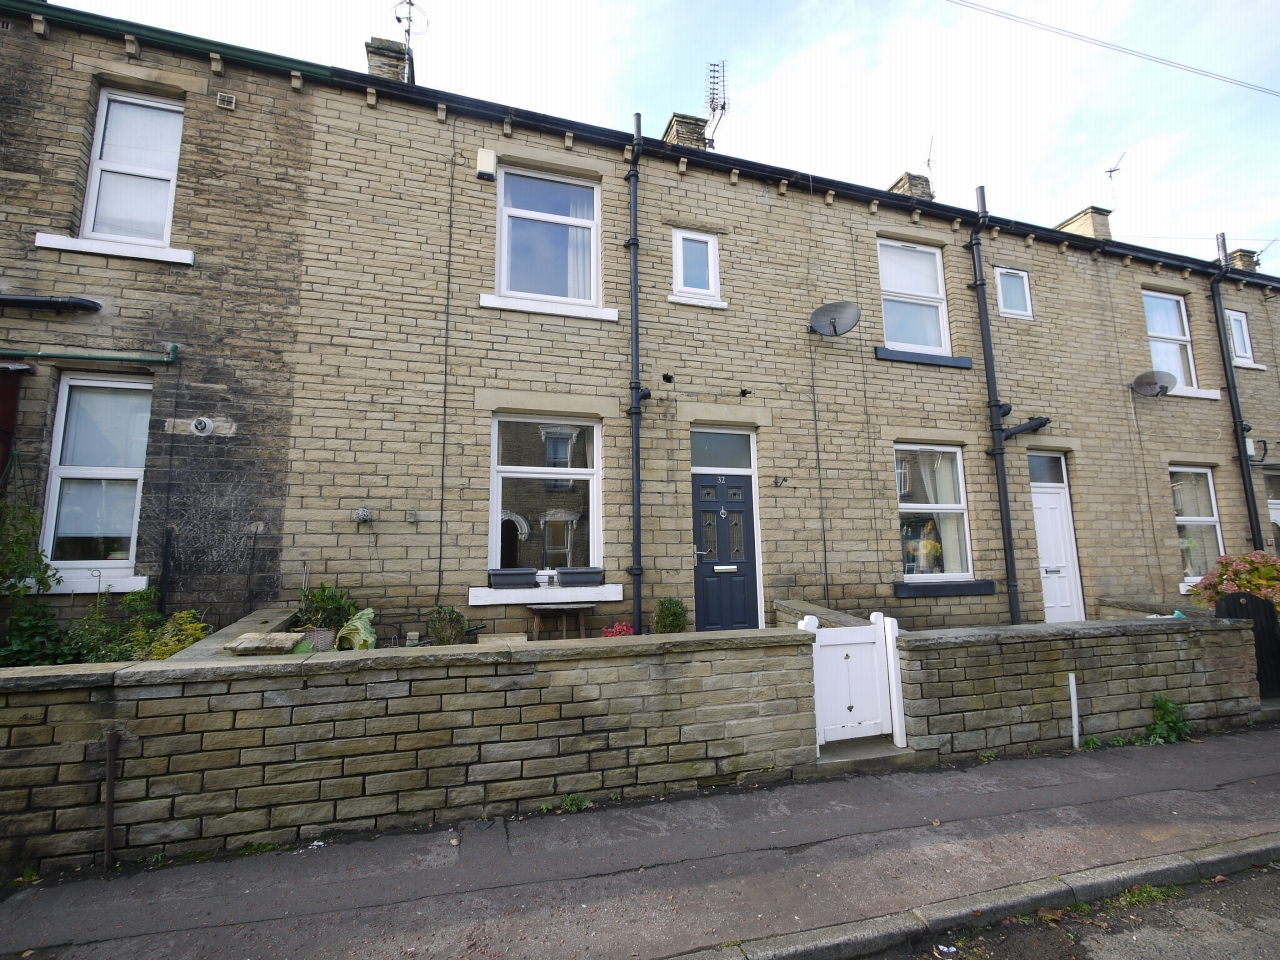 3 bedroom mid terraced house SSTC in Brighouse - Photograph 1.